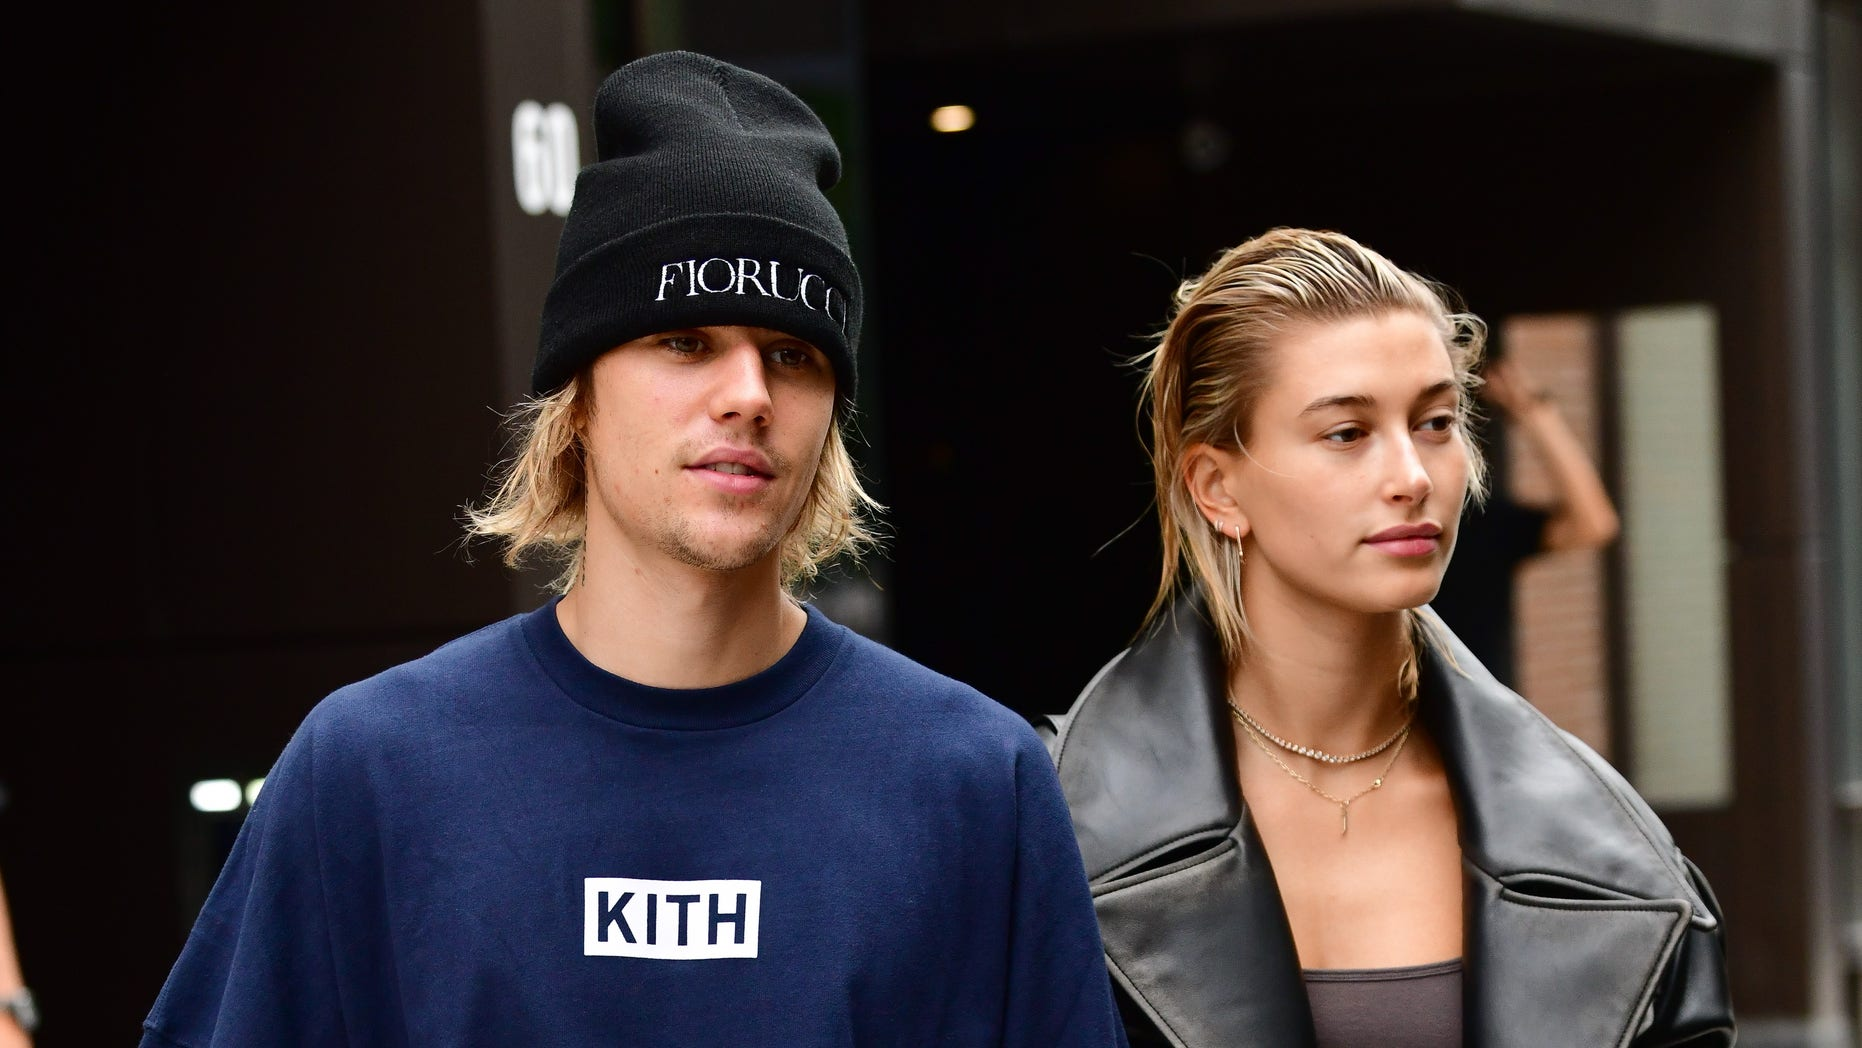 Justin Bieber, Hailey Baldwin claim they did not have sex before marriage